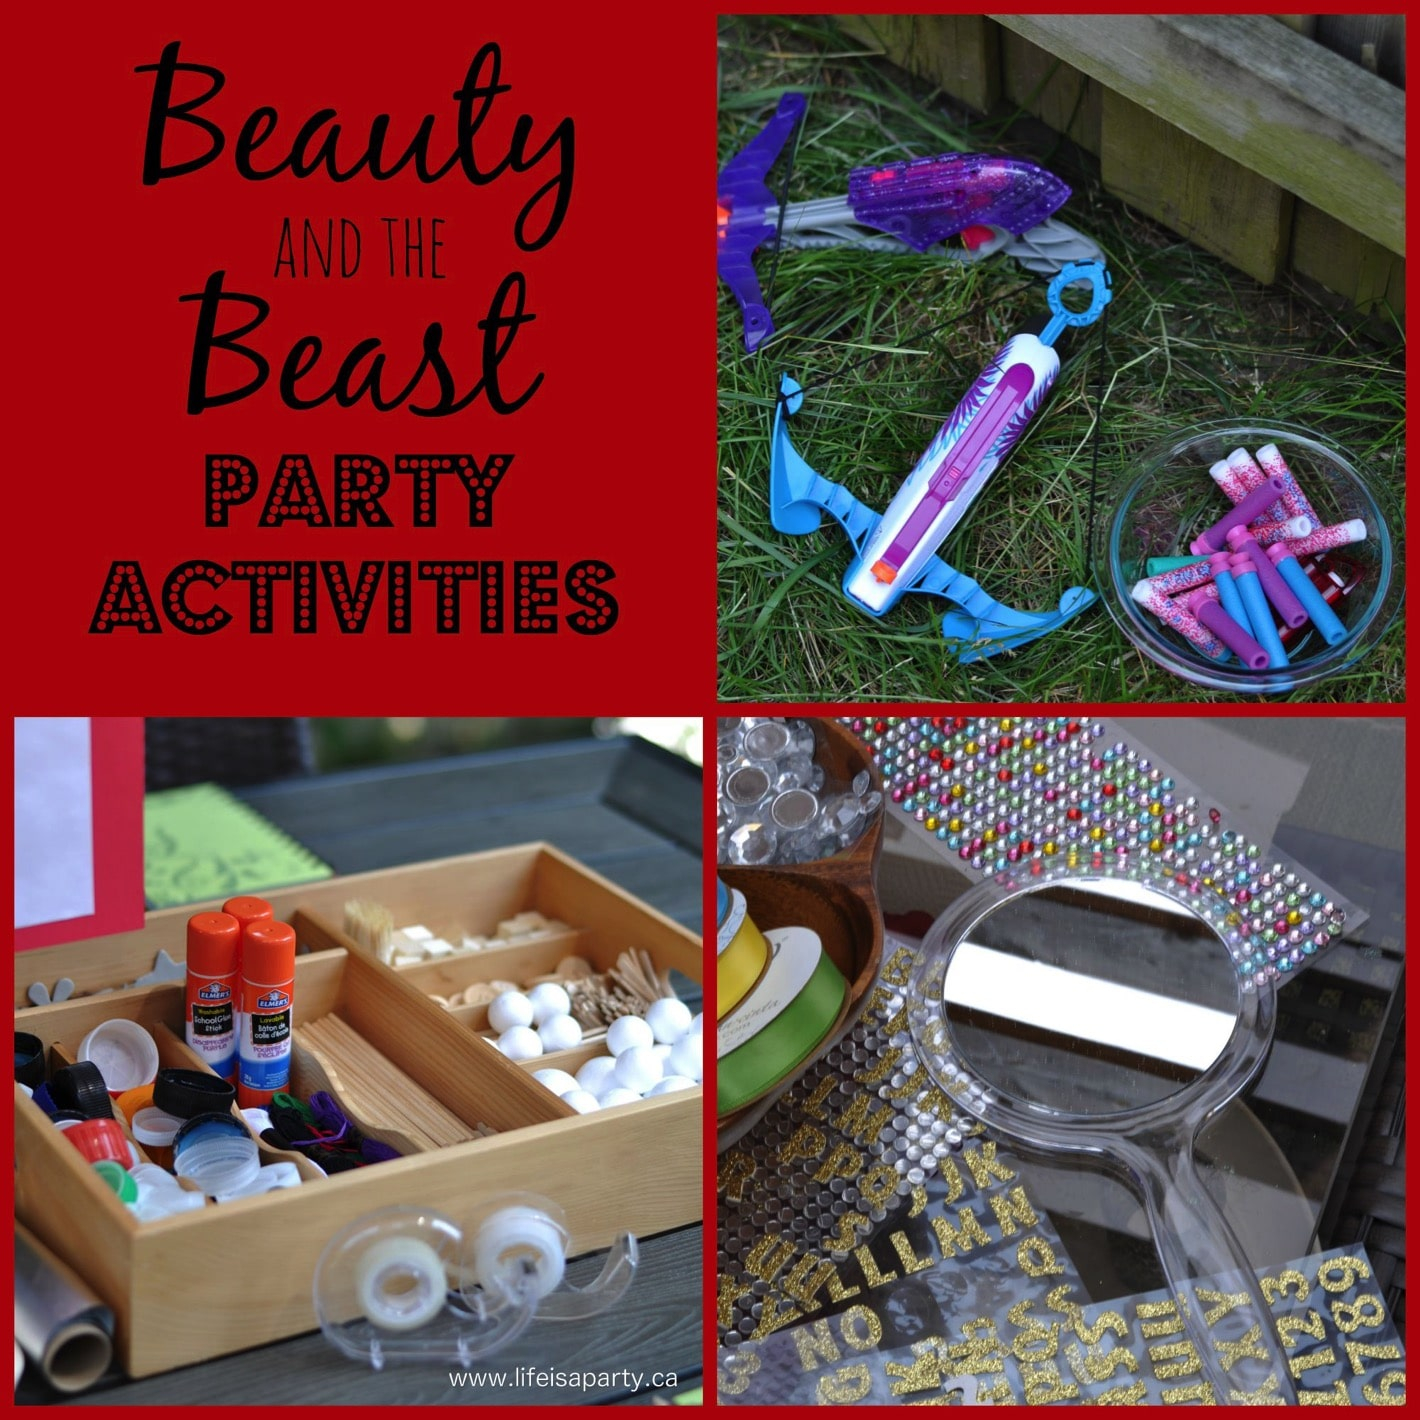 Fullsize Of Beauty And The Beast Party Ideas